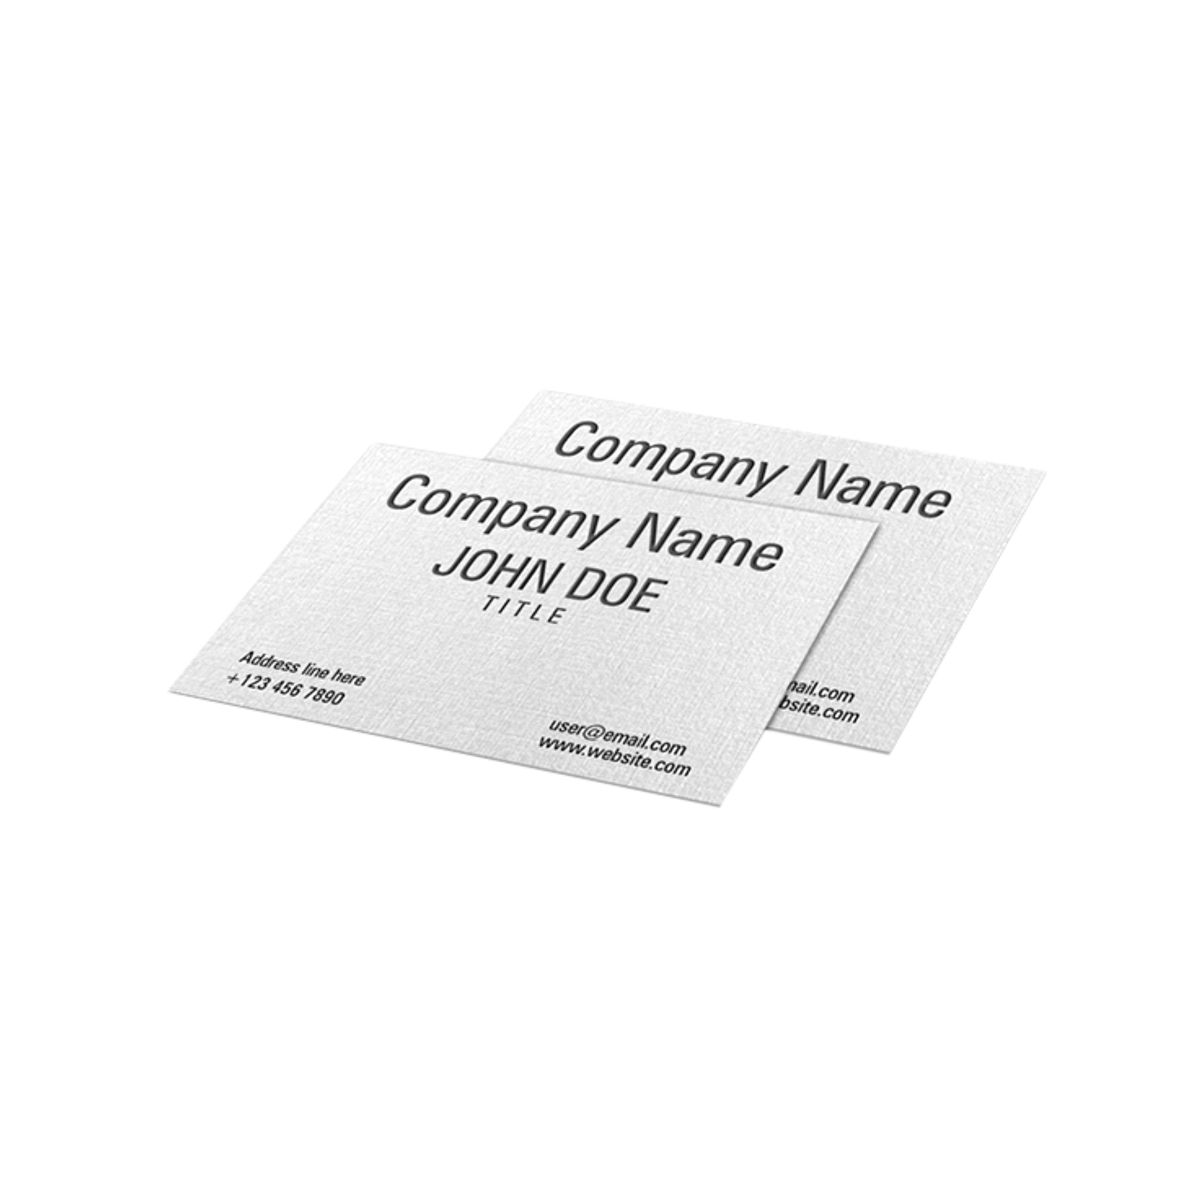 Linen Uncoated Business Card | Qualita Print